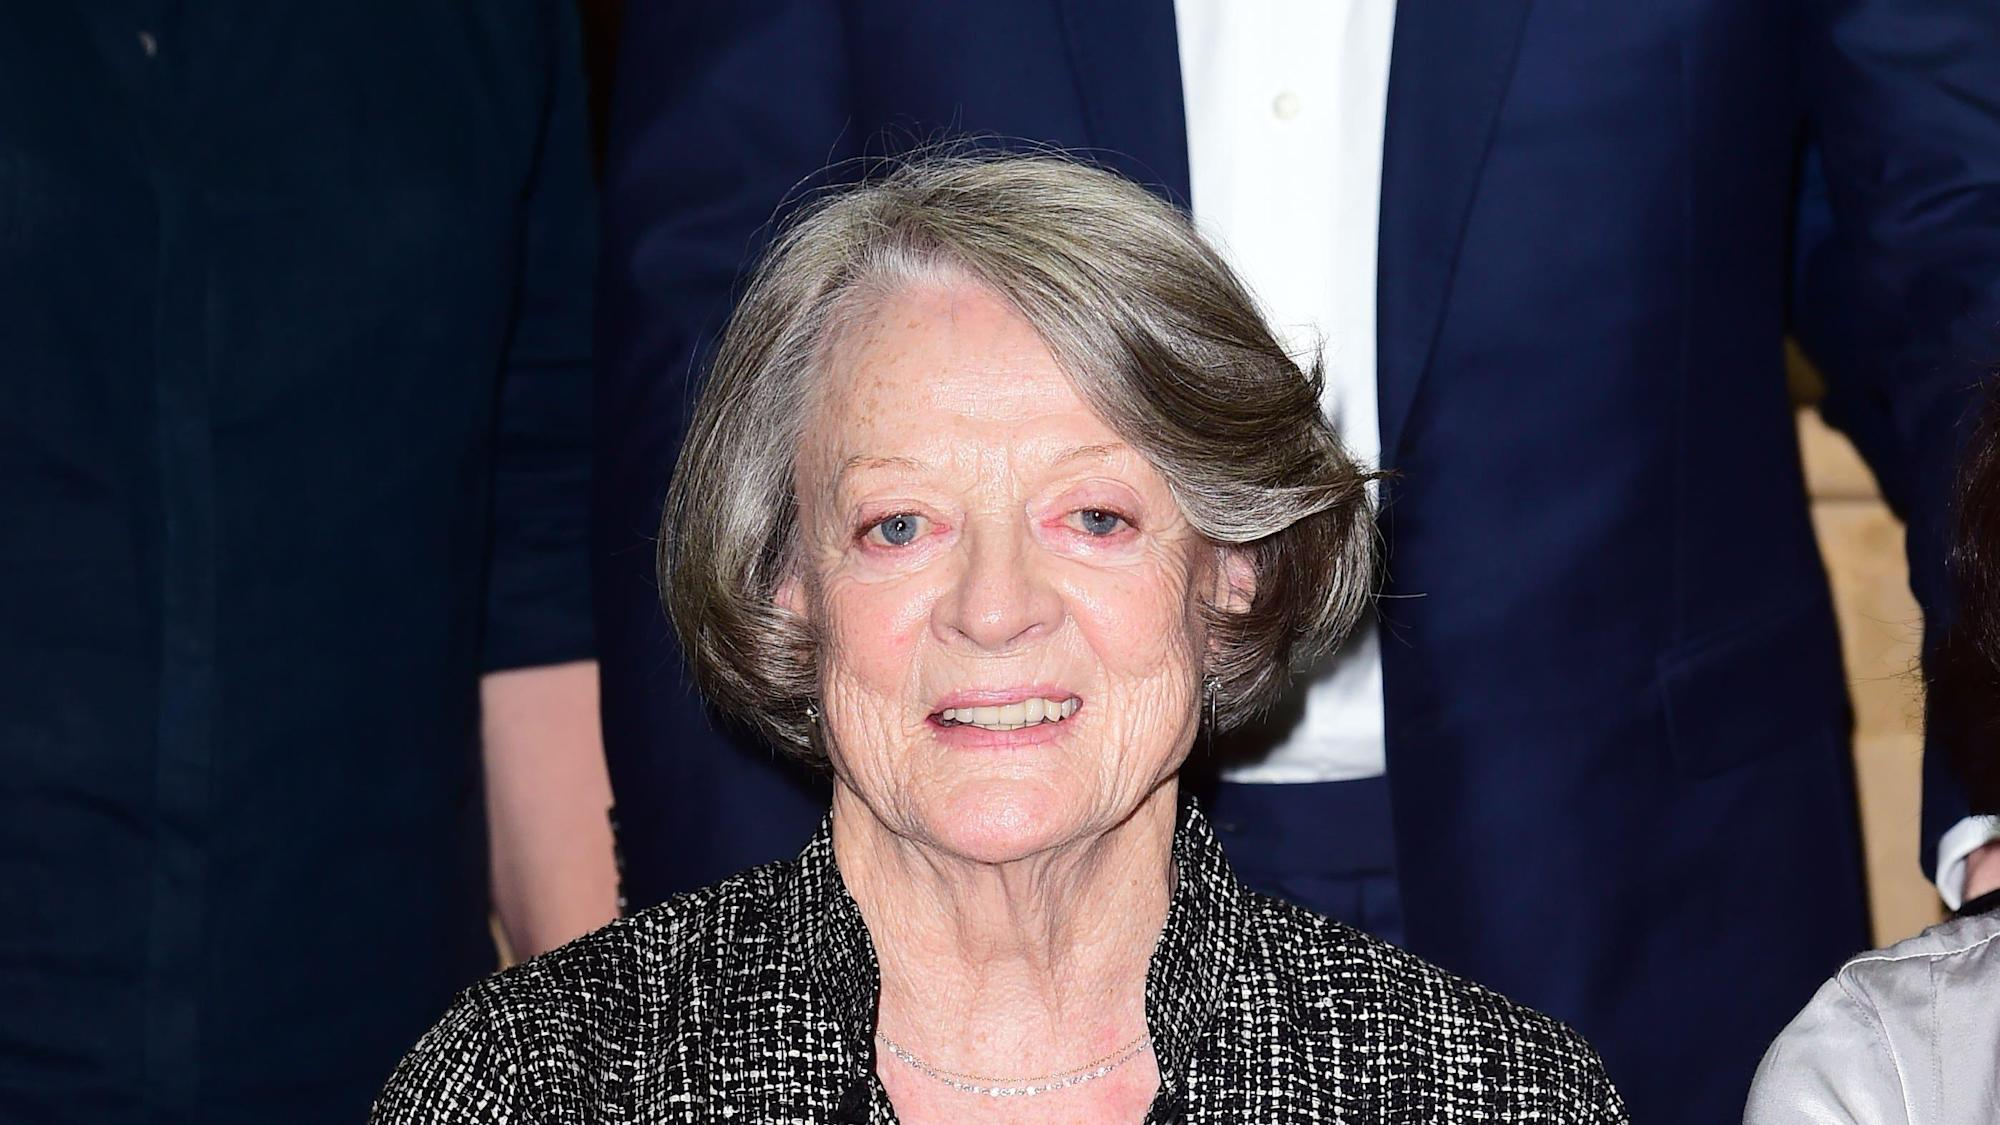 Maggie Smith tells how Julie Andrews rescued her